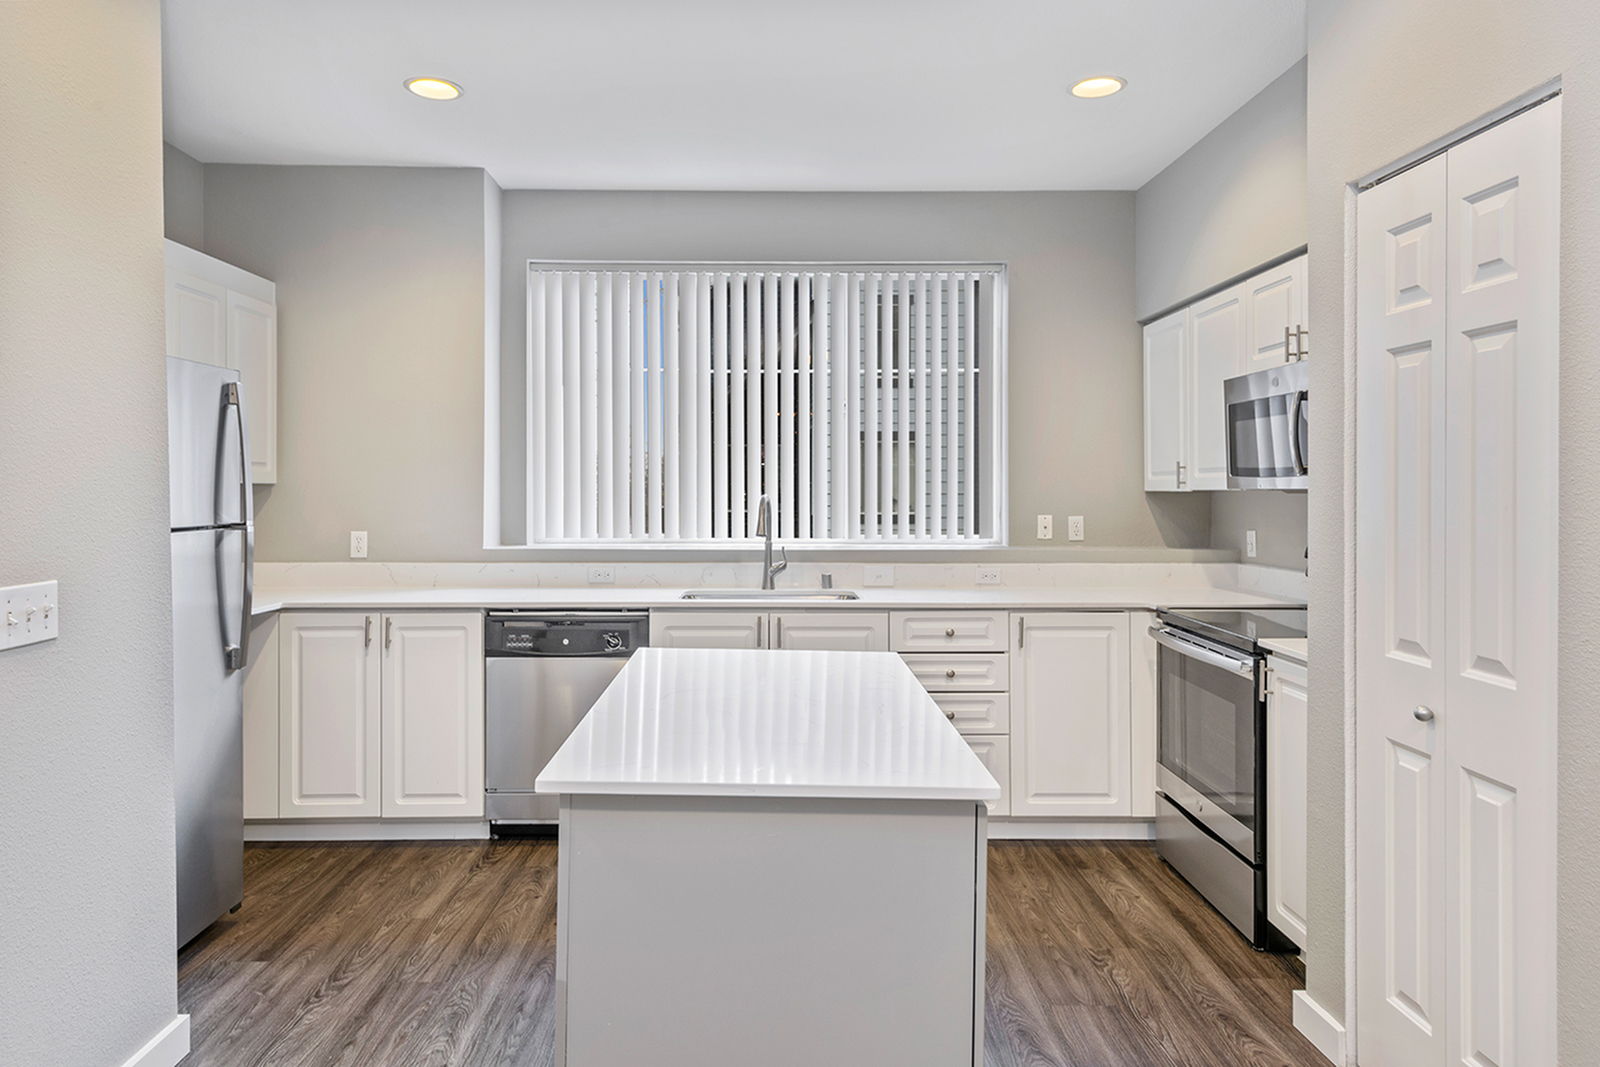 Image of Fully Renovated Kitchens for Arrive North Bend